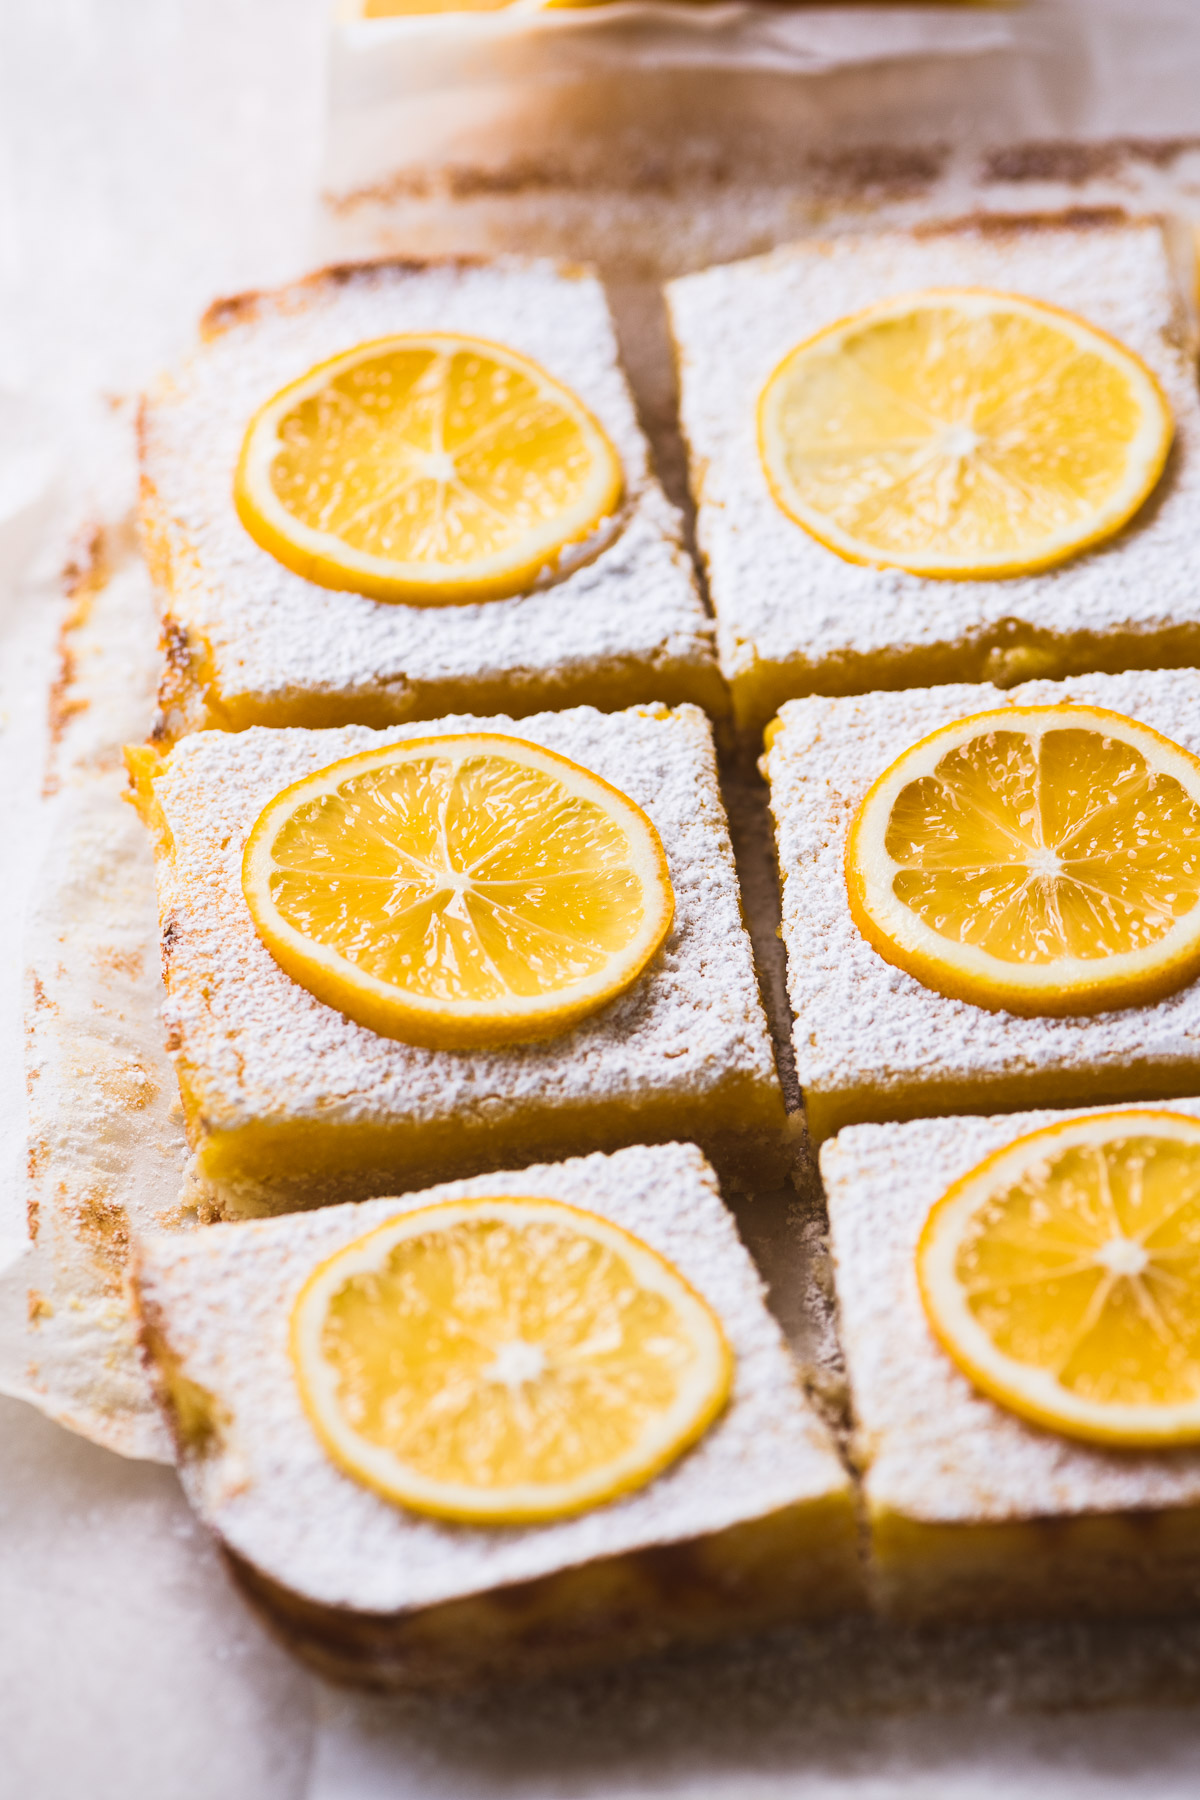 Whole meyer lemon bars, sliced into squares